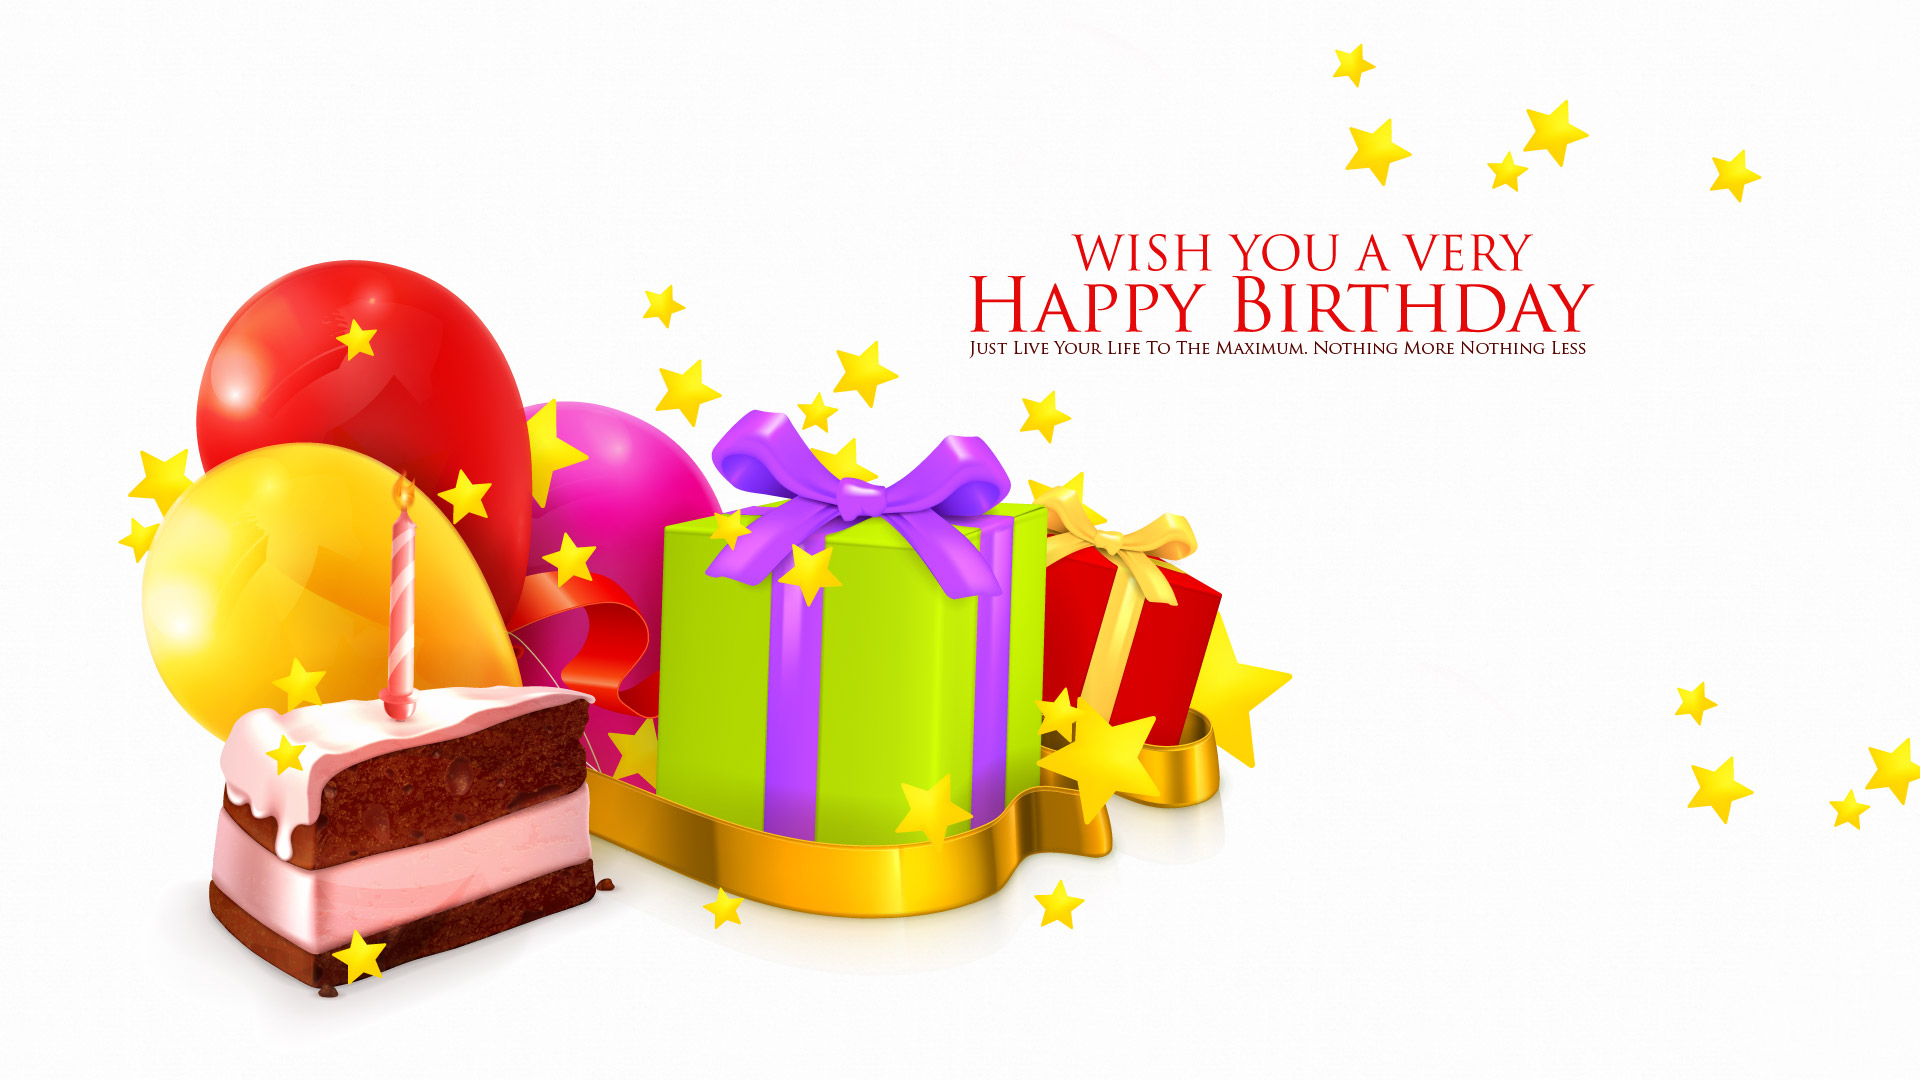 wishing happy birthday in hindi images